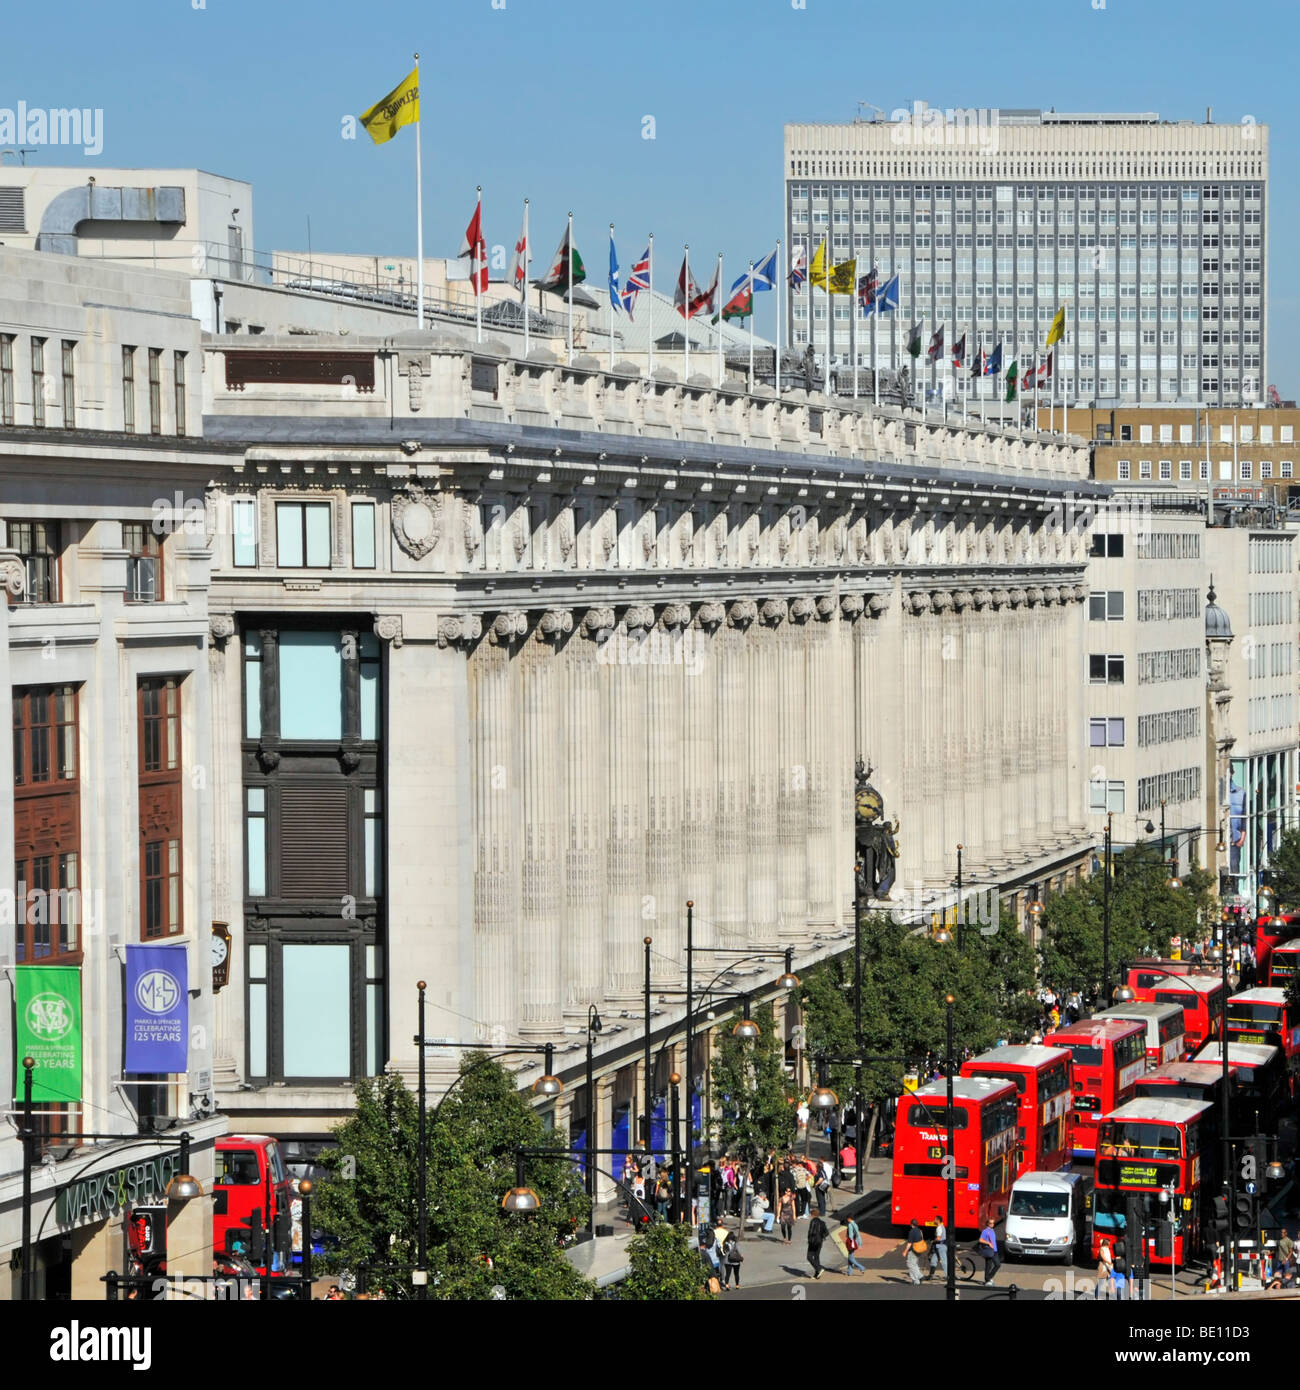 Oxford Street frontage of Selfridges department store with flags flying at roof top level & red London buses West End London England UK Stock Photo